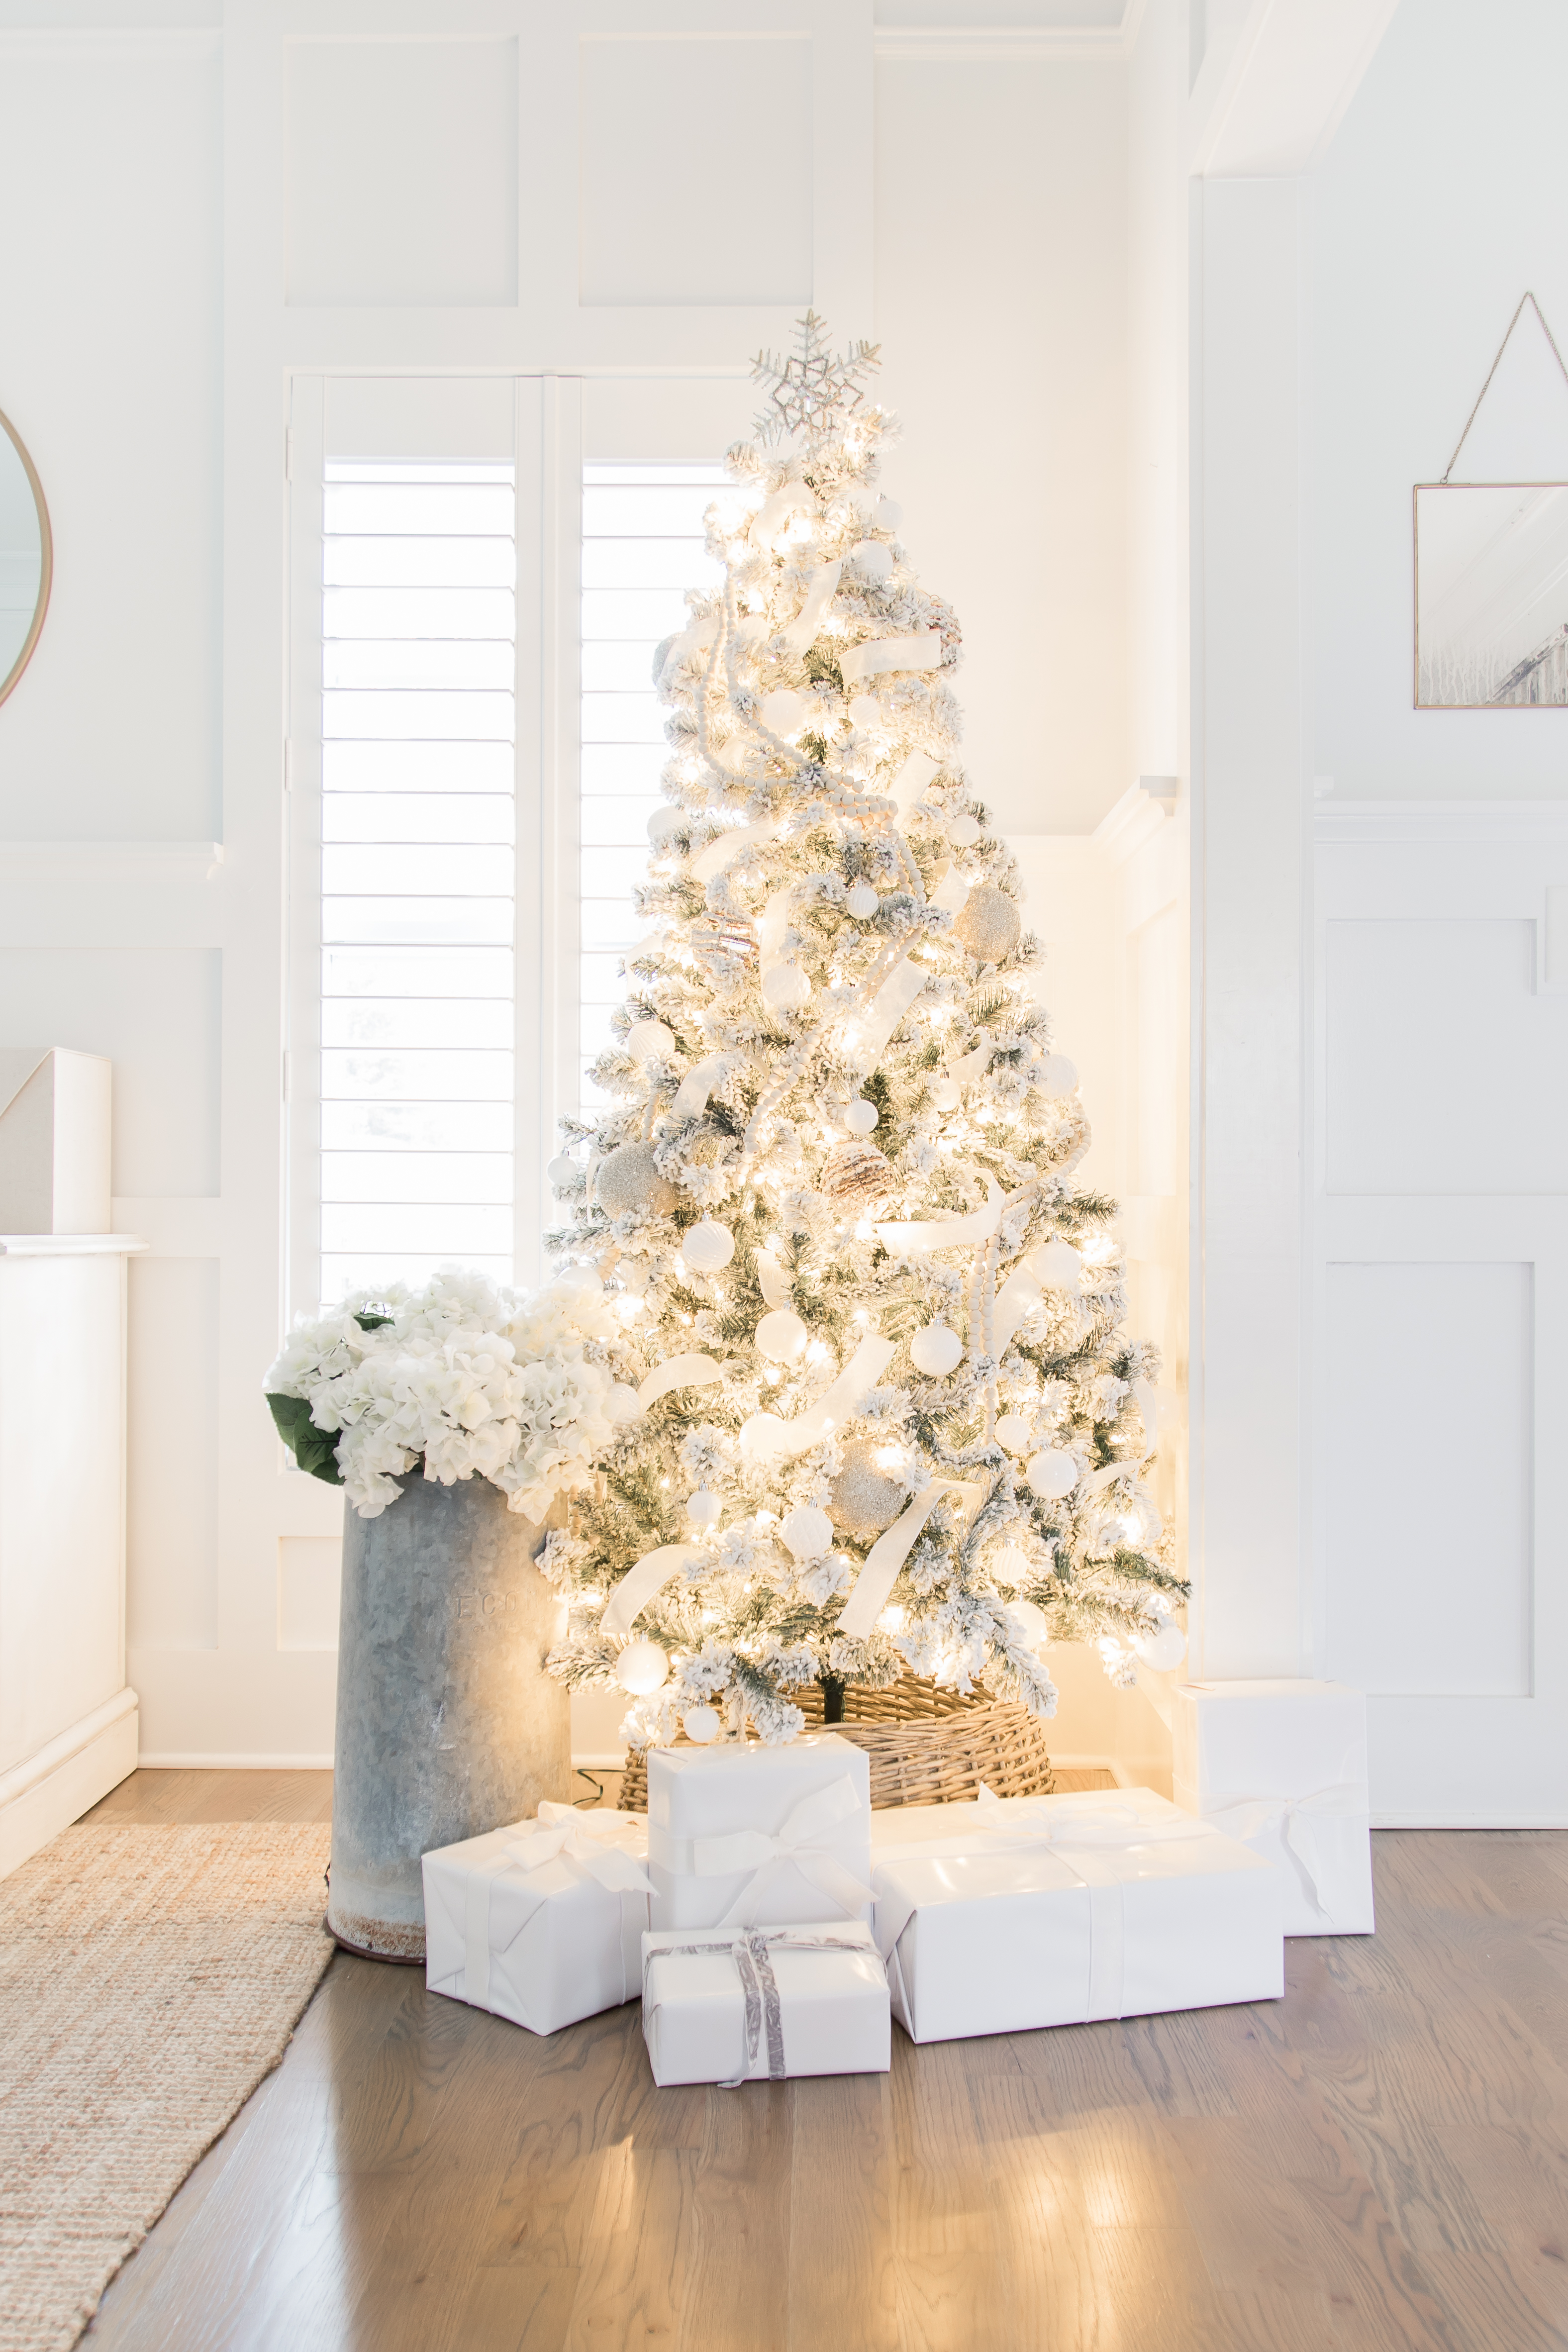 Woods and White Christmas Tree Decor |King of Christmas Prince Flock | AE Home Style Life | #christmastree #flockedtree #christmastreedecor #christmastreeornaments #flockedtreedecor